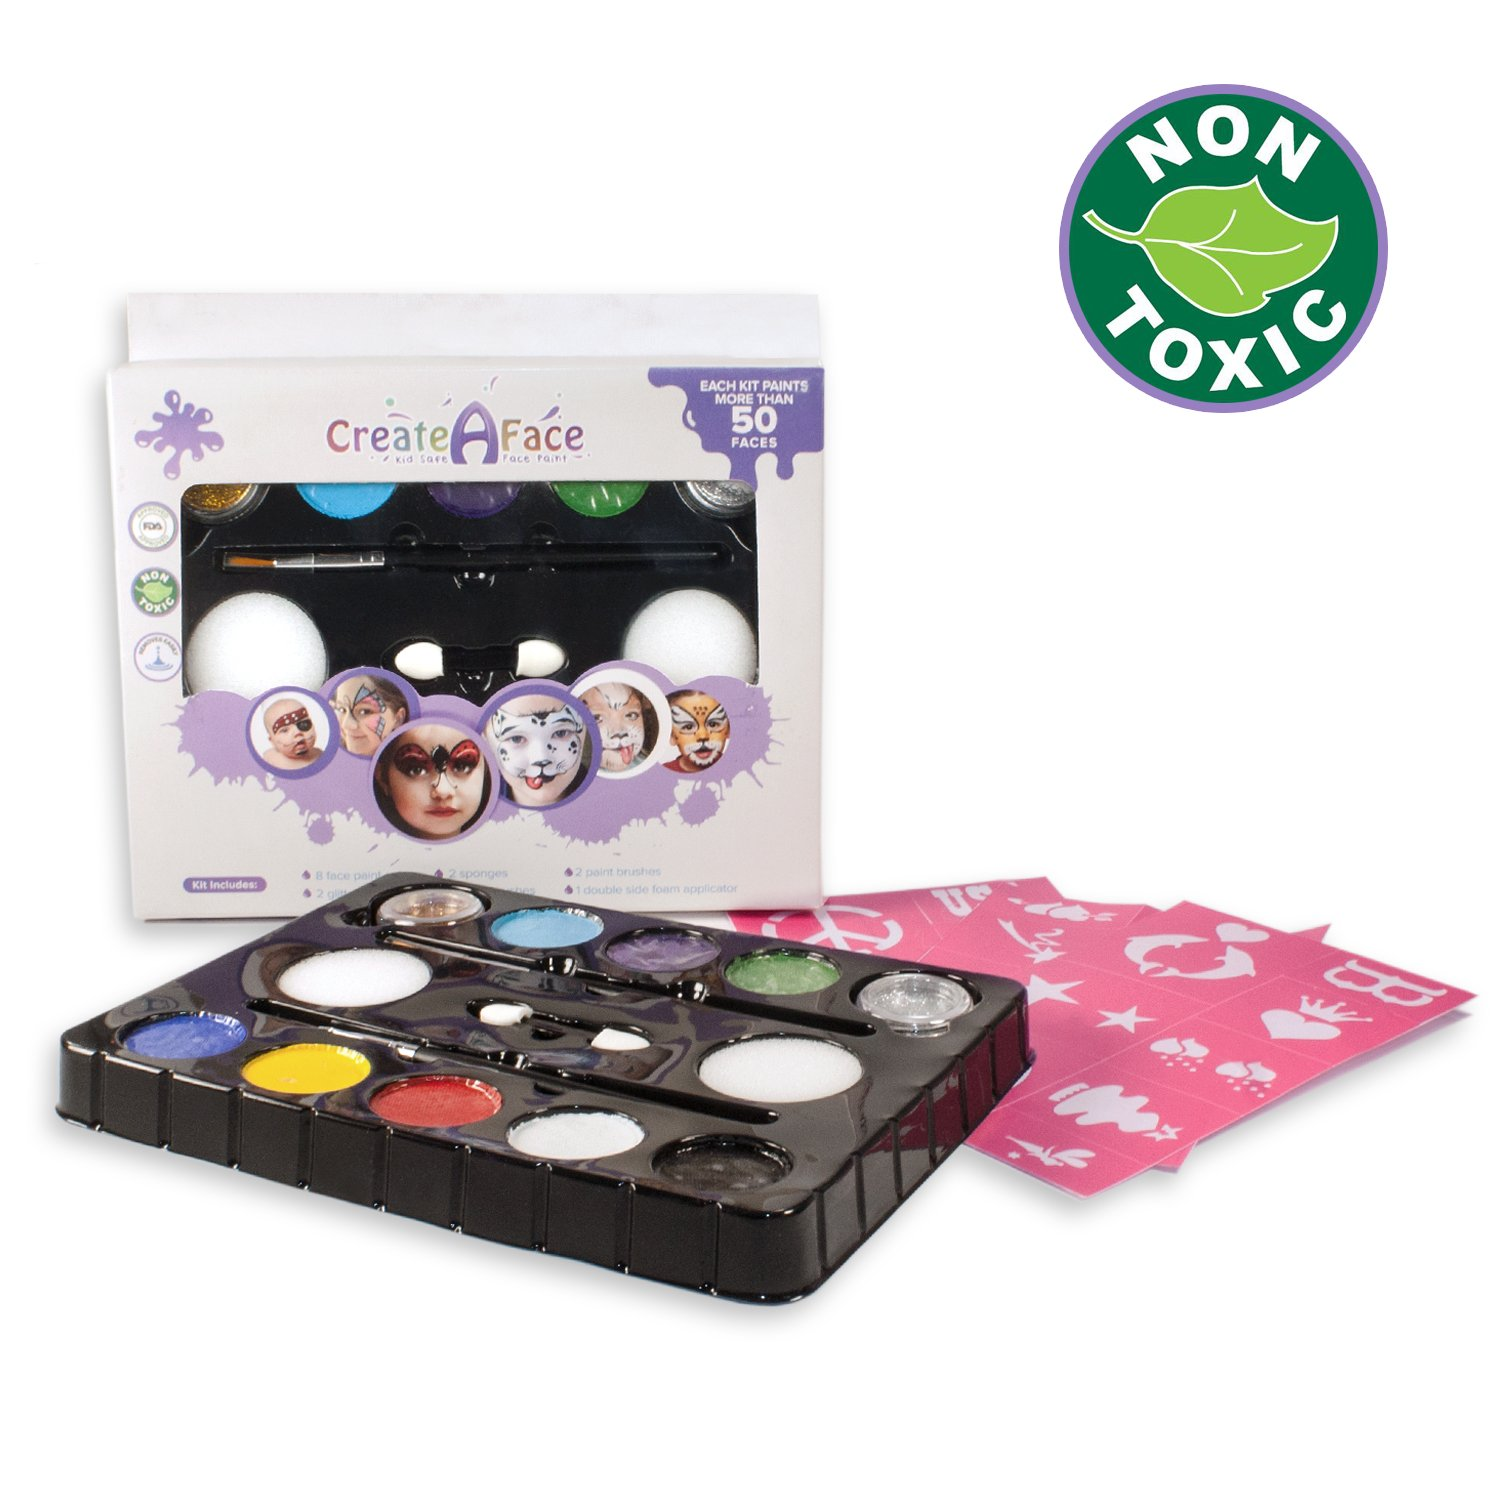 Face Paint For Kids (8 Vibrant Colors + 2 Glitter Gels + 2 Brushes + 2 Sponges + 24 Done-For-You Stencils) Water Based, Skin-Friendly, Fragrance Free & FDA Compliant - Paints 40 - 80 Face Projects